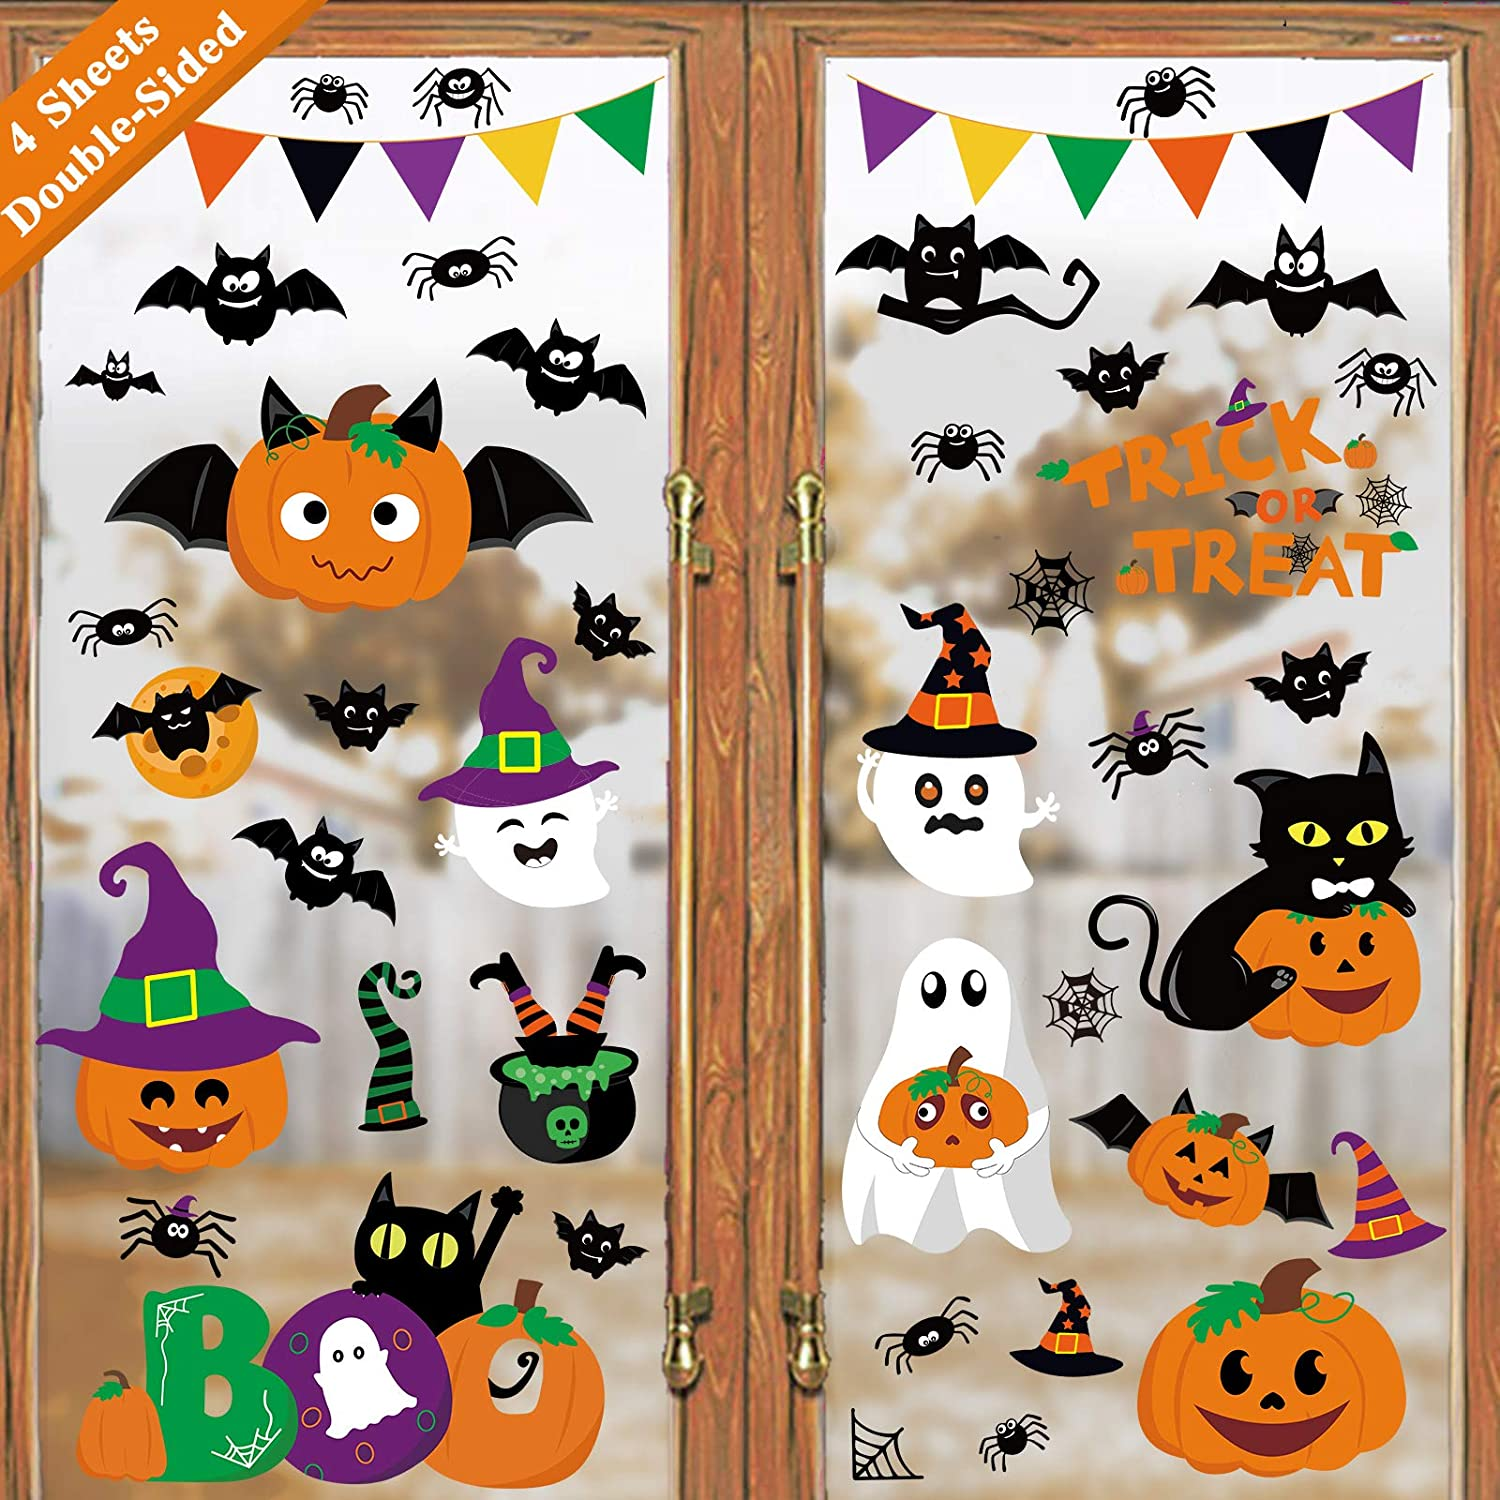 Ivenf Halloween Decorations Window Clings Decor, Cute Pumpkin Ghost Trick or Treat Kids School Home Office Accessories Party Supplies Gifts, 4 Sheet 44pcs